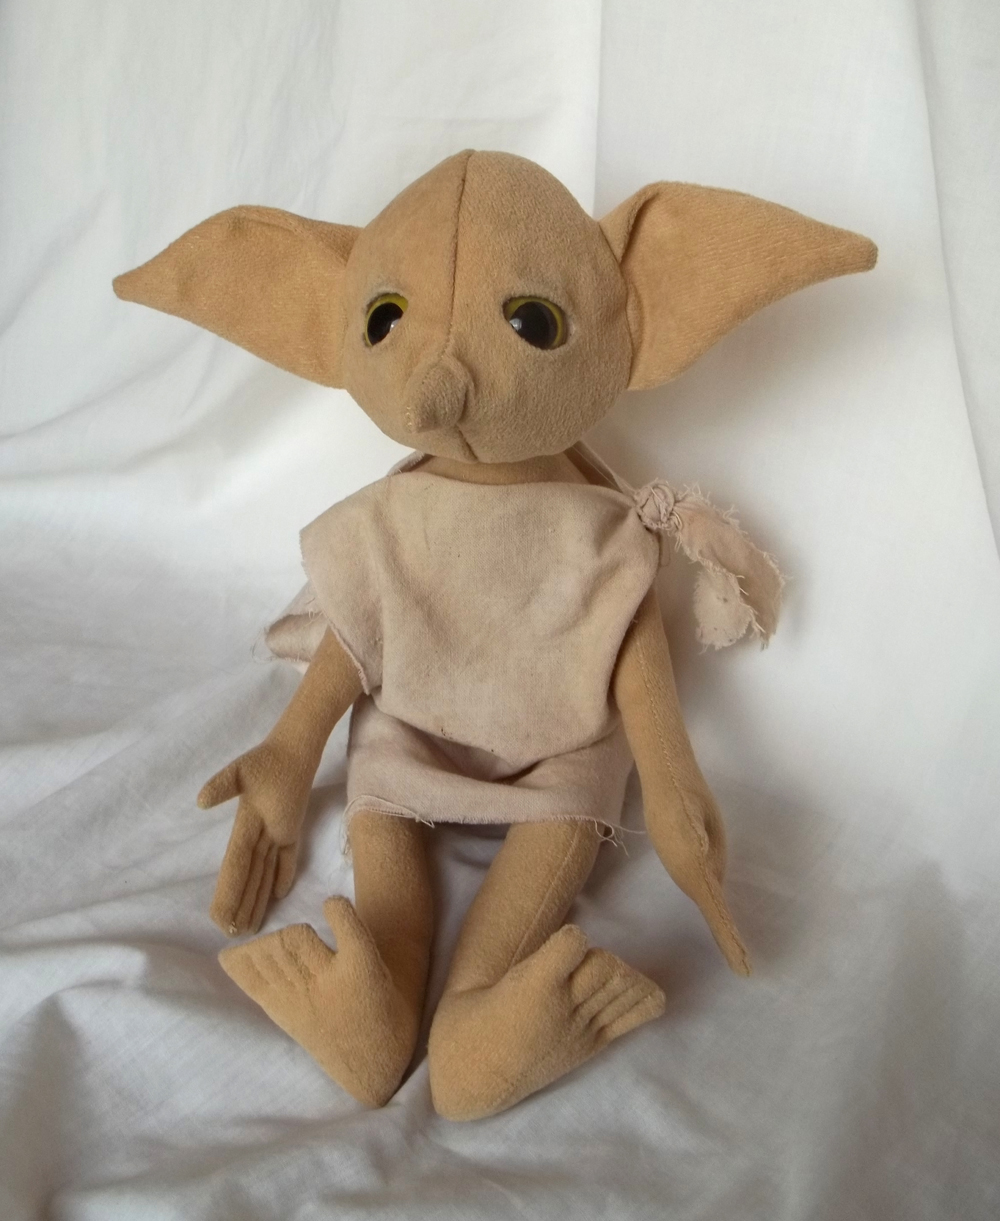 Knitting Pattern For Dobby The House Elf : All Things Crafty: House Elf Triplets and More